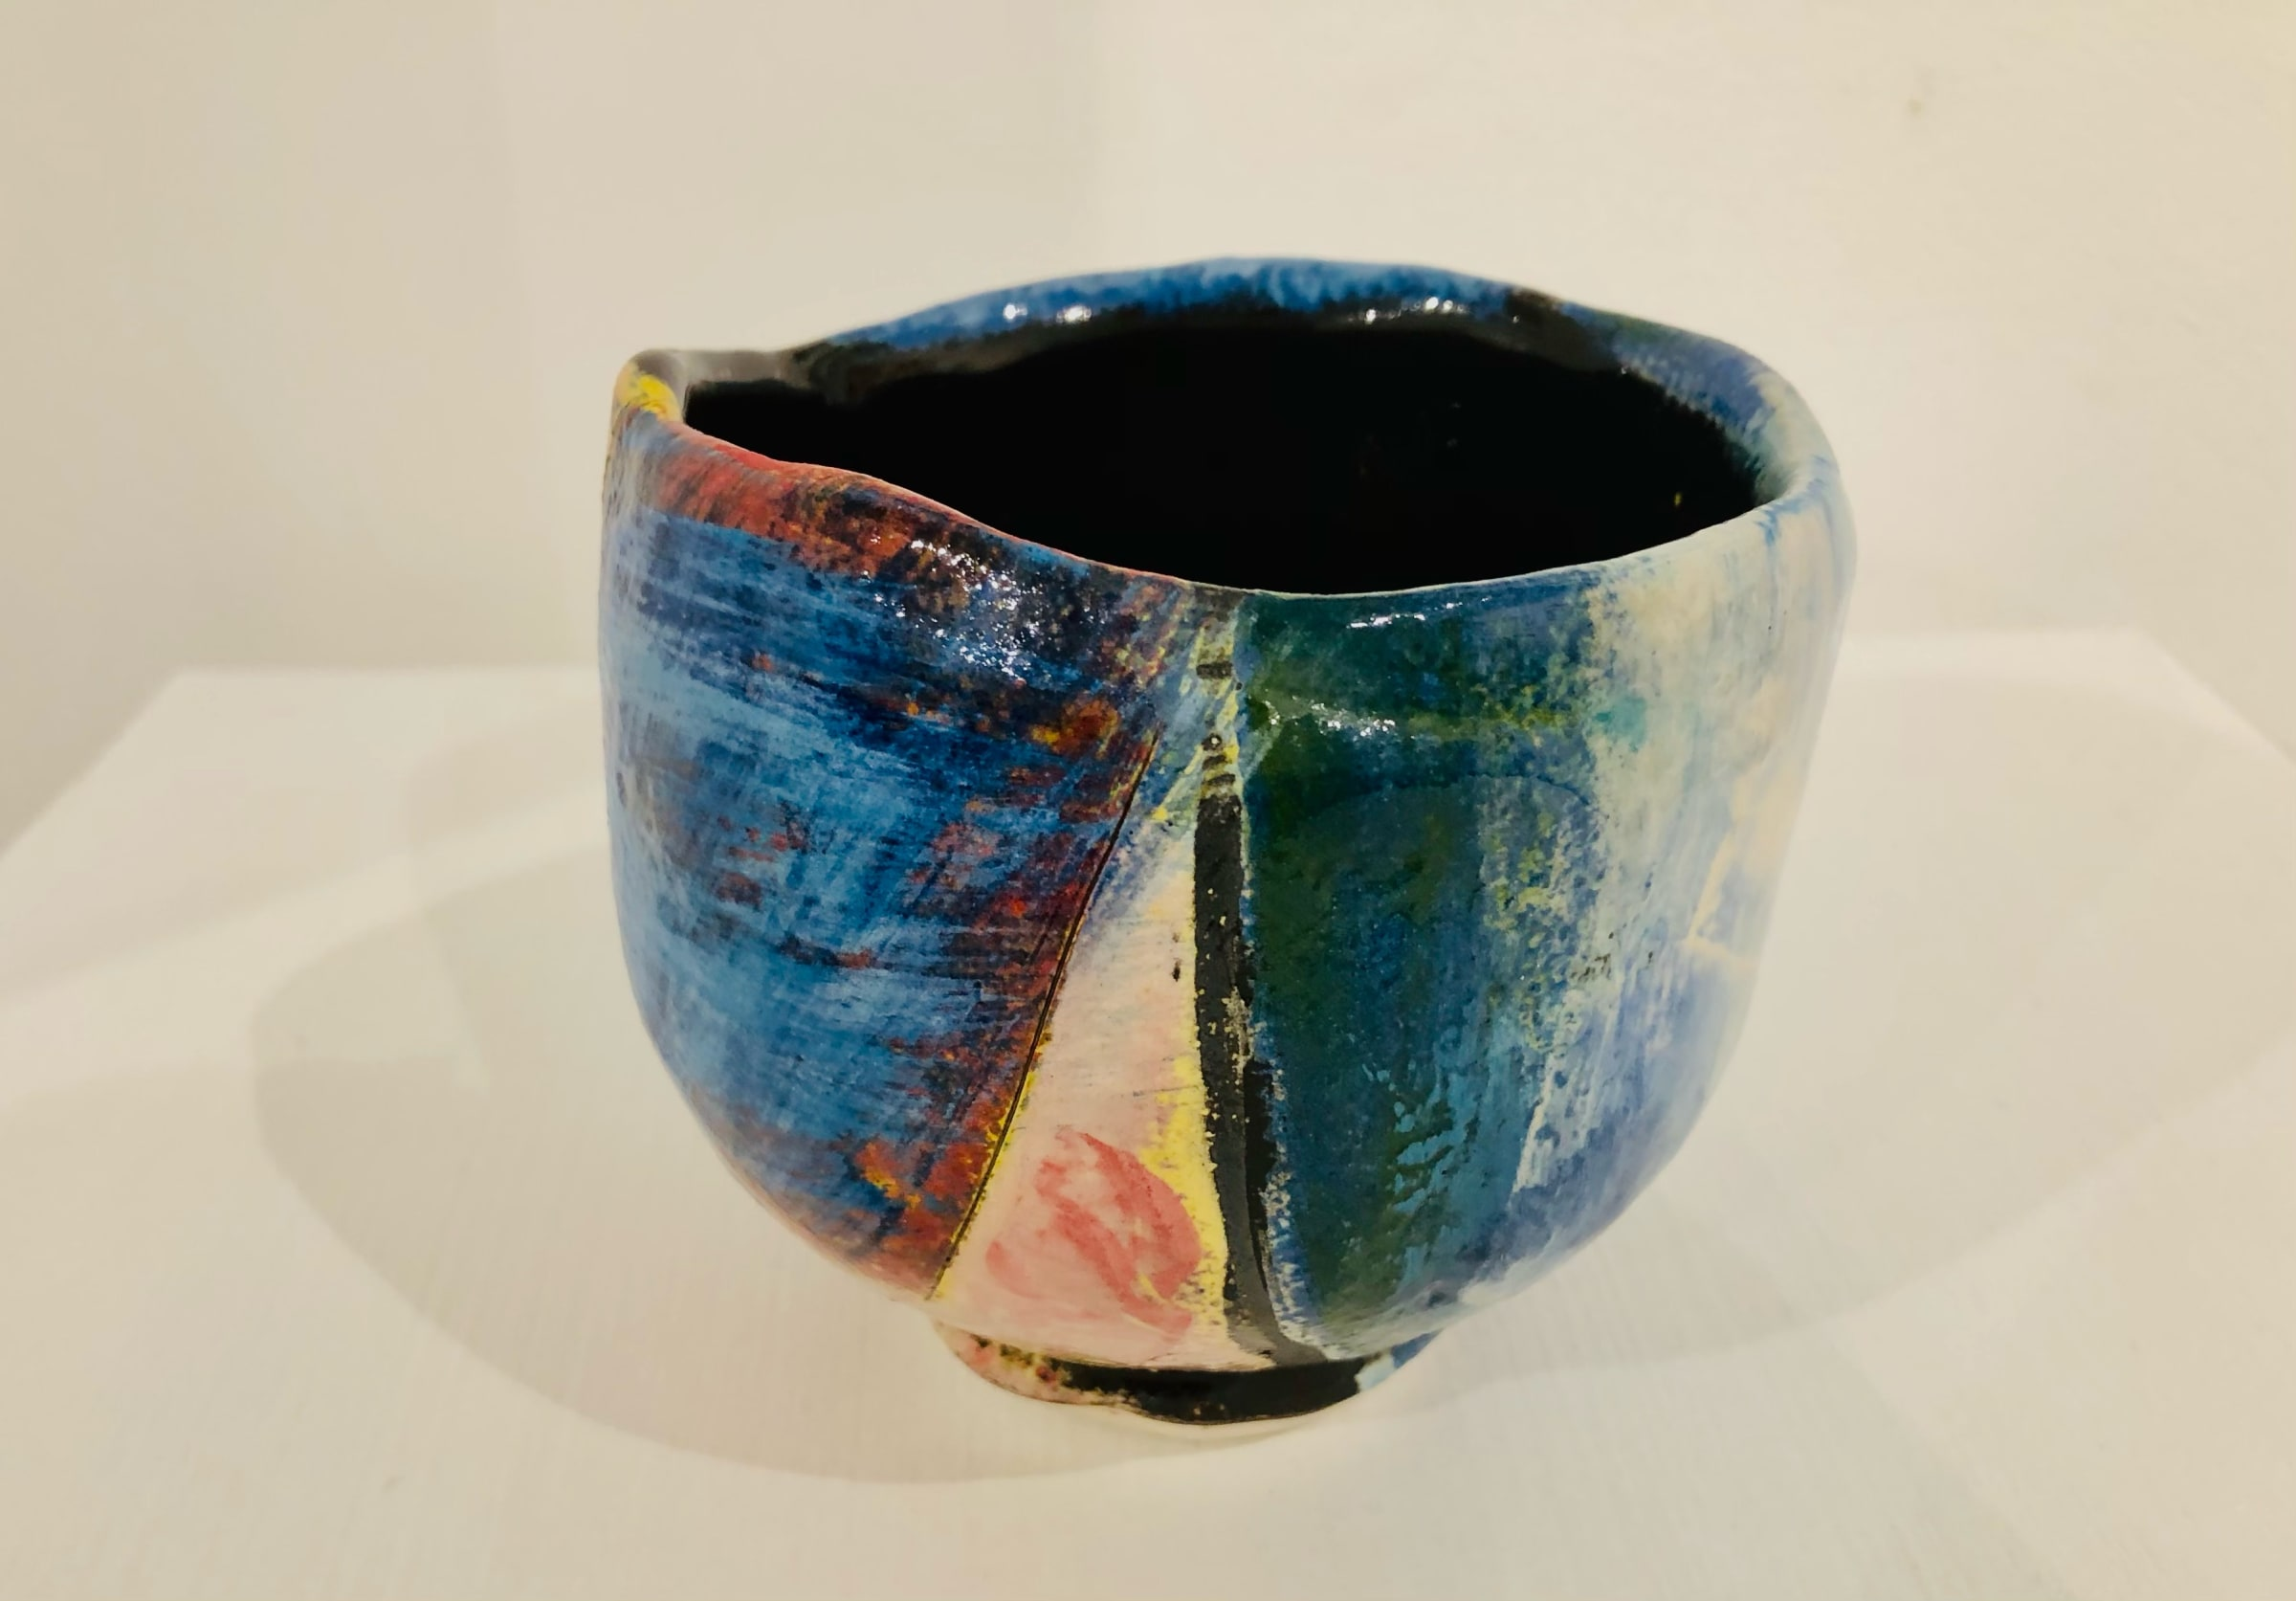 """<span class=""""link fancybox-details-link""""><a href=""""/artists/100-john-pollex/works/7422-john-pollex-tea-bowl-hand-built-2020/"""">View Detail Page</a></span><div class=""""artist""""><strong>John Pollex</strong></div> <div class=""""title""""><em>Tea bowl (hand built)</em>, 2020</div> <div class=""""signed_and_dated"""">impressed with the artist's seal mark 'JP'</div> <div class=""""medium"""">white earthenware decorated with coloured slips</div> <div class=""""dimensions"""">height. 10 cm x diameter. 10 cm</div><div class=""""price"""">£88.00</div><div class=""""copyright_line"""">Copyright The Artist</div>"""